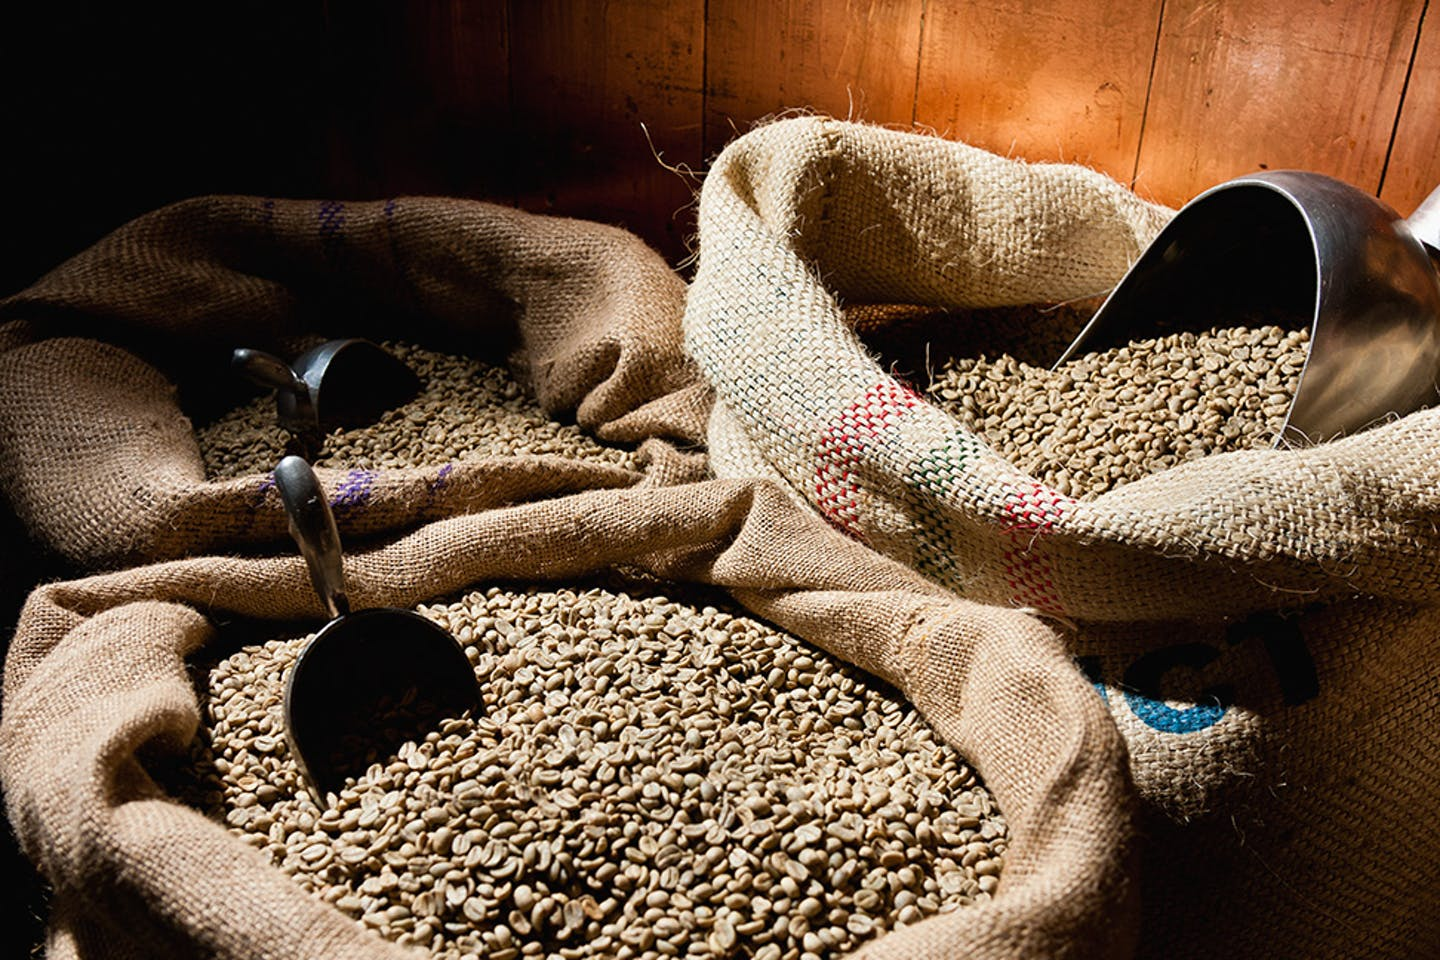 bags of peruvian coffee beans